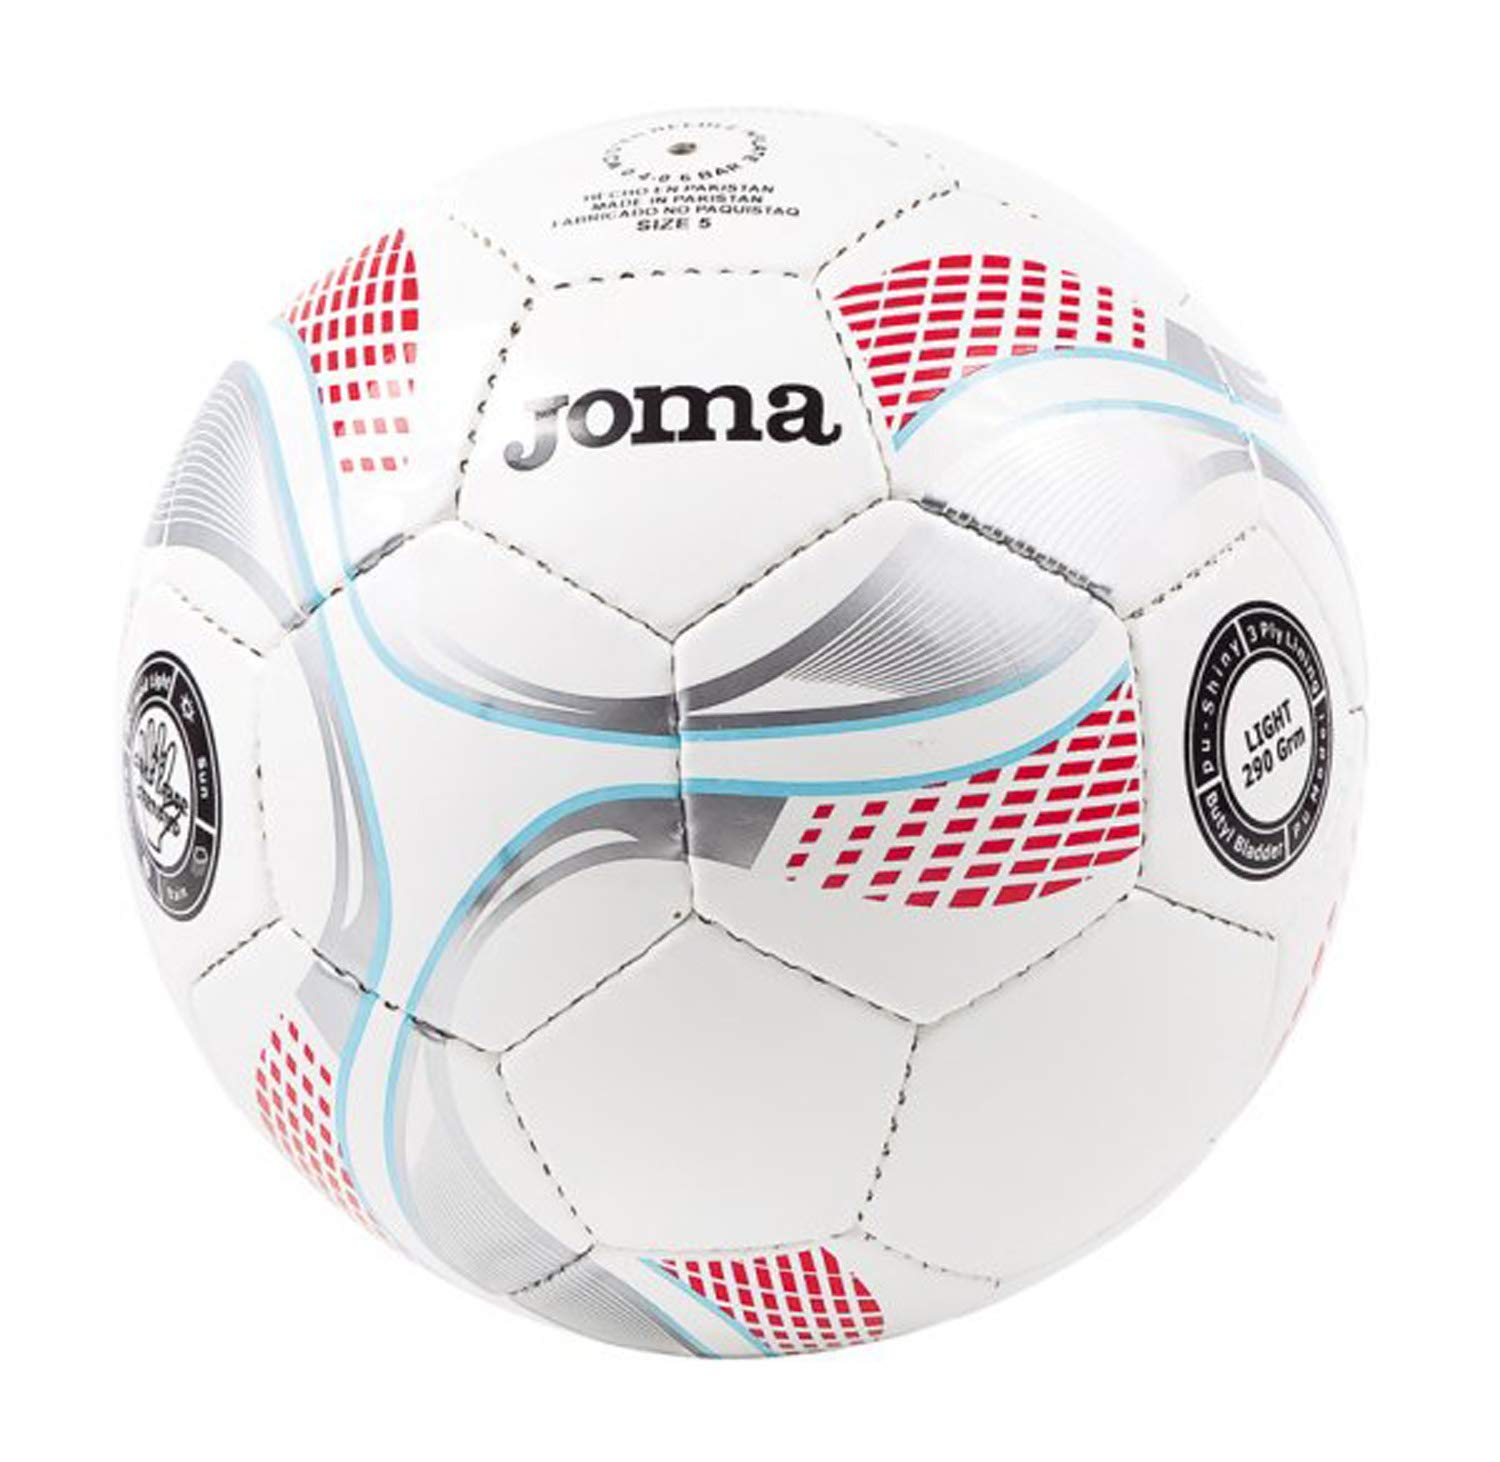 Joma Sport - Balon Ultra Light T4 (290 Gr.), Blanco, Size T4 ...